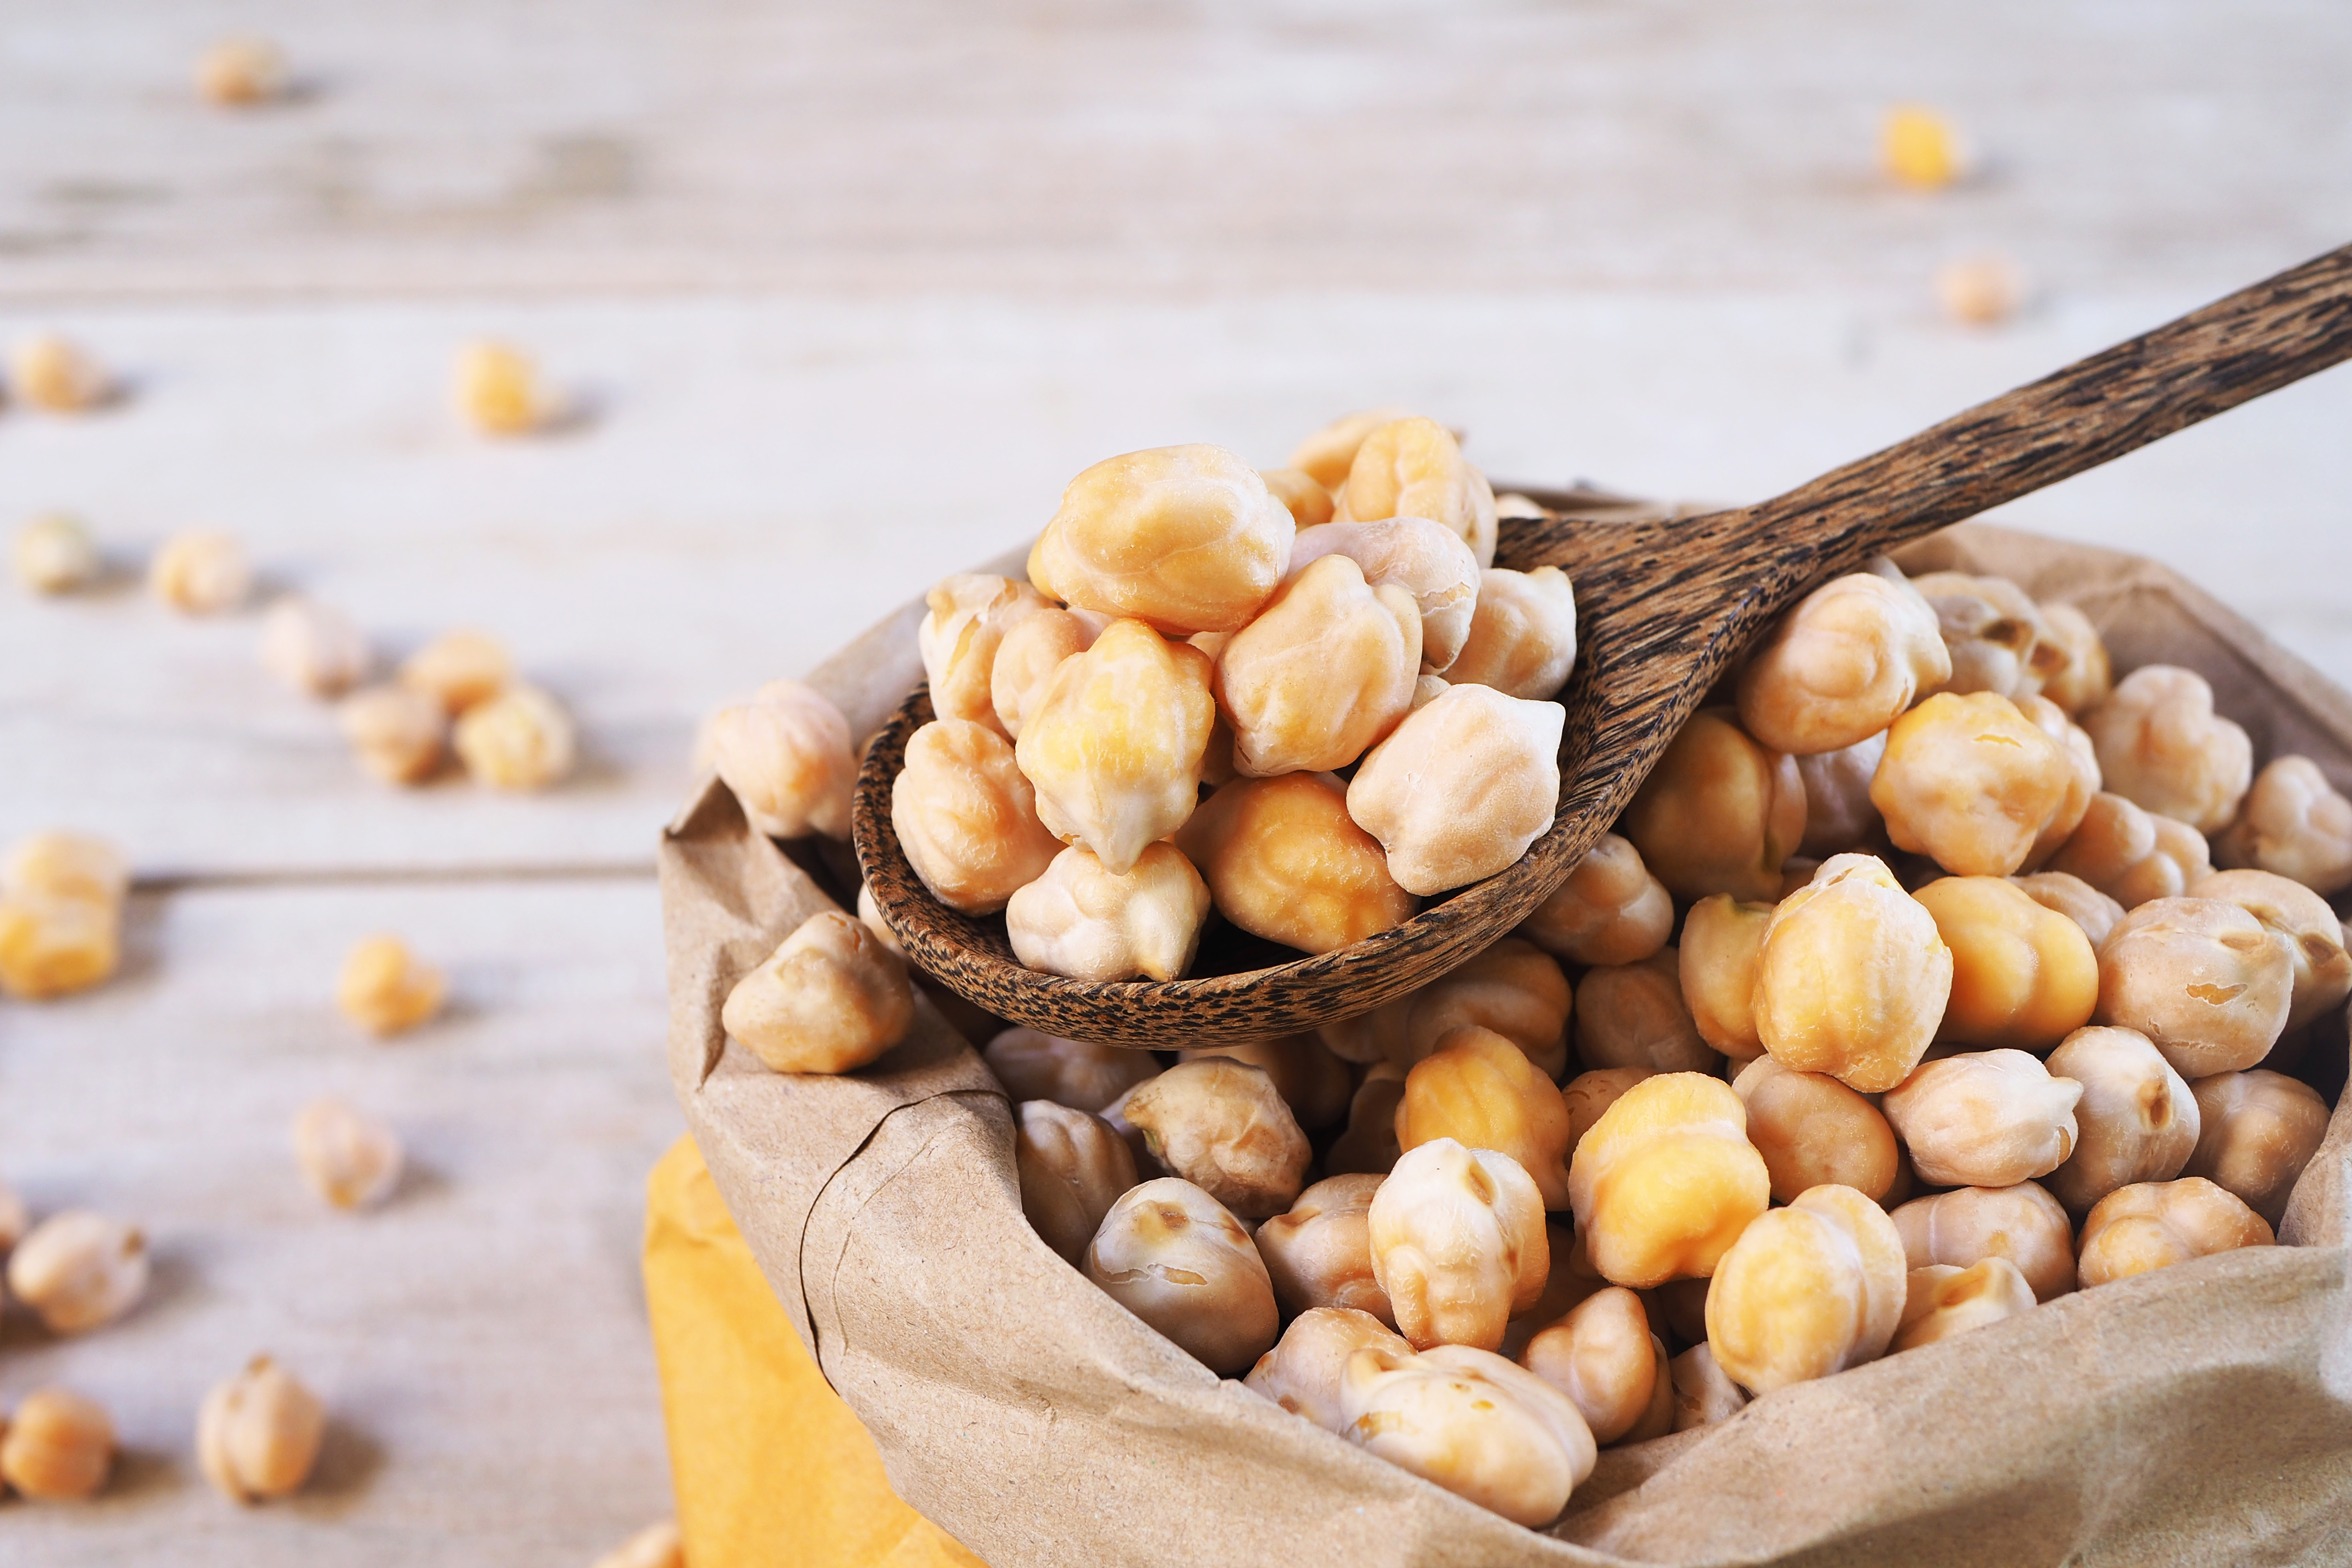 A-wooden-spoon-of-dried-chickpeas-on-a-chickpea-bag_shutterstock_449291566.jpg